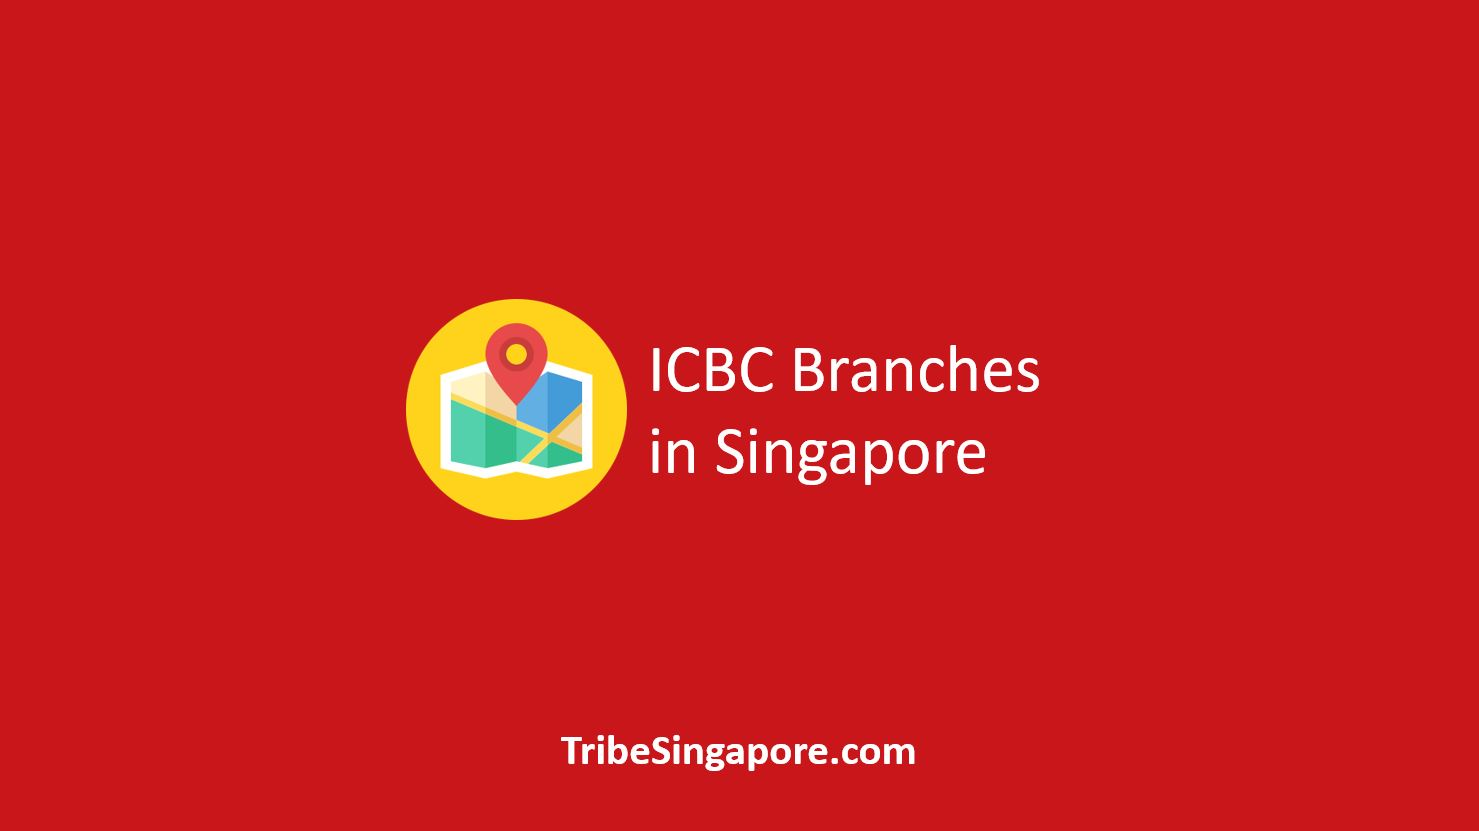 ICBC Branches in Singapore